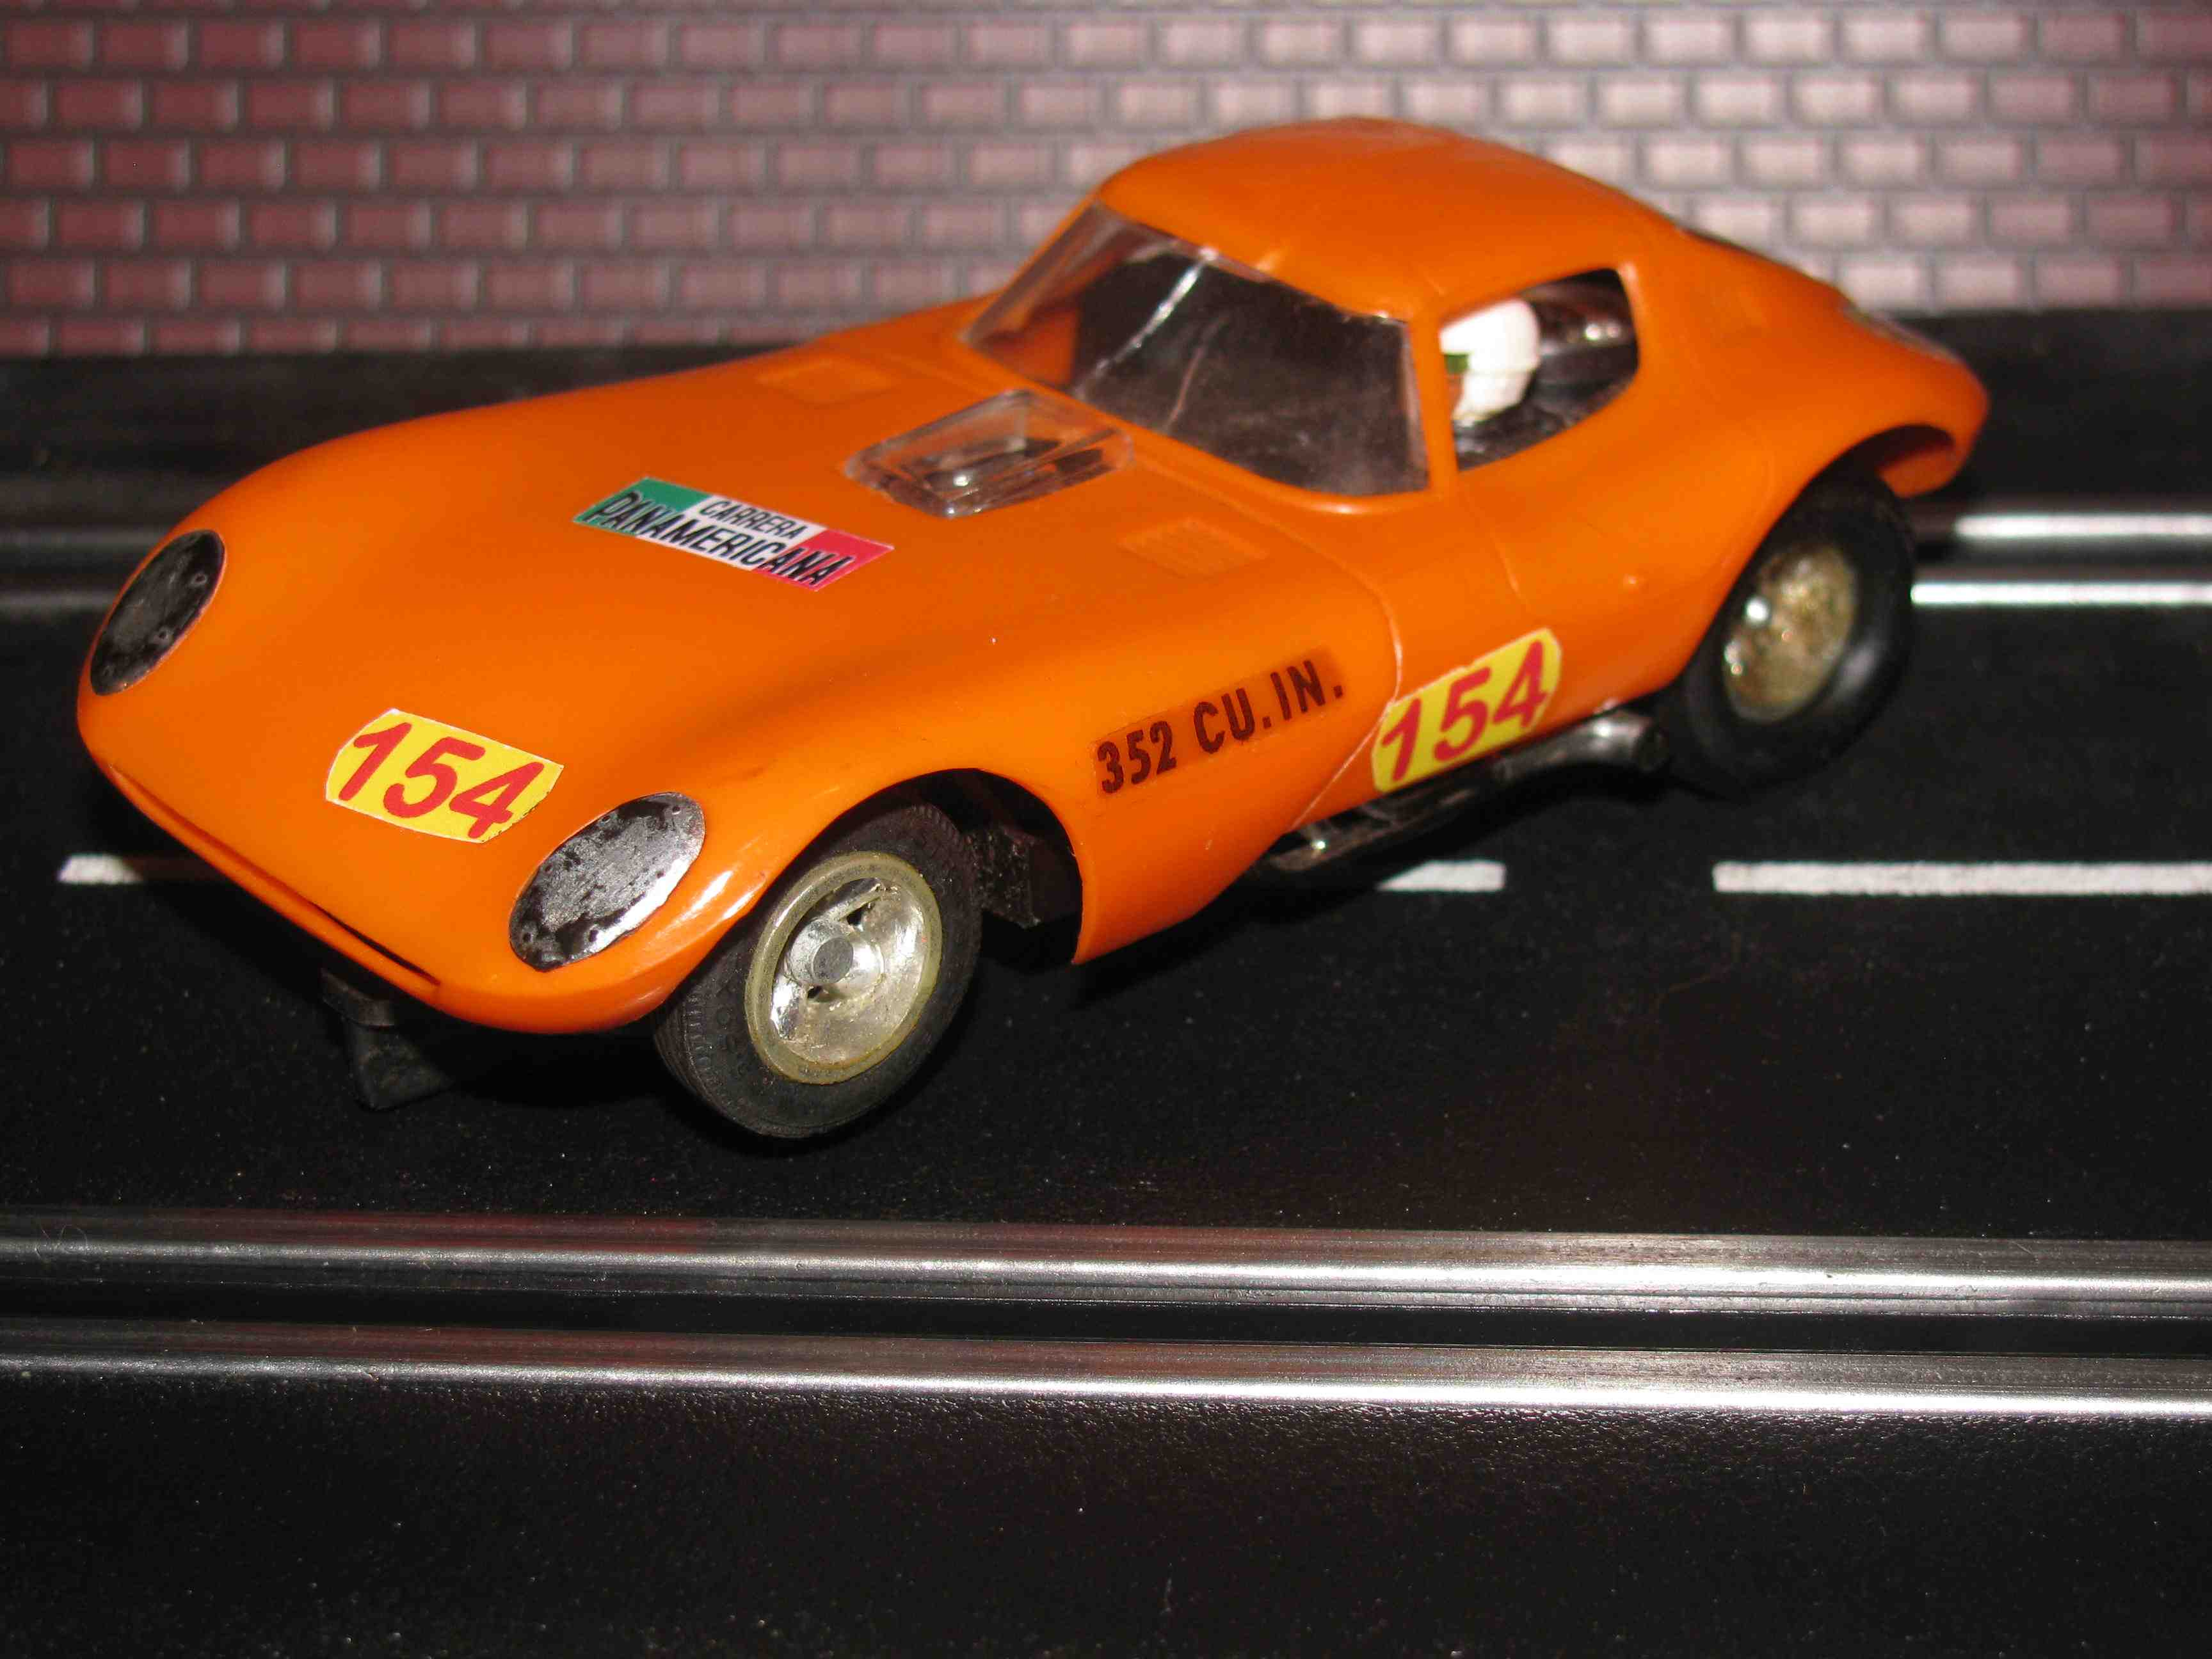 * SOLD * Strombecker Cheetah Slot Car 1/32 Scale